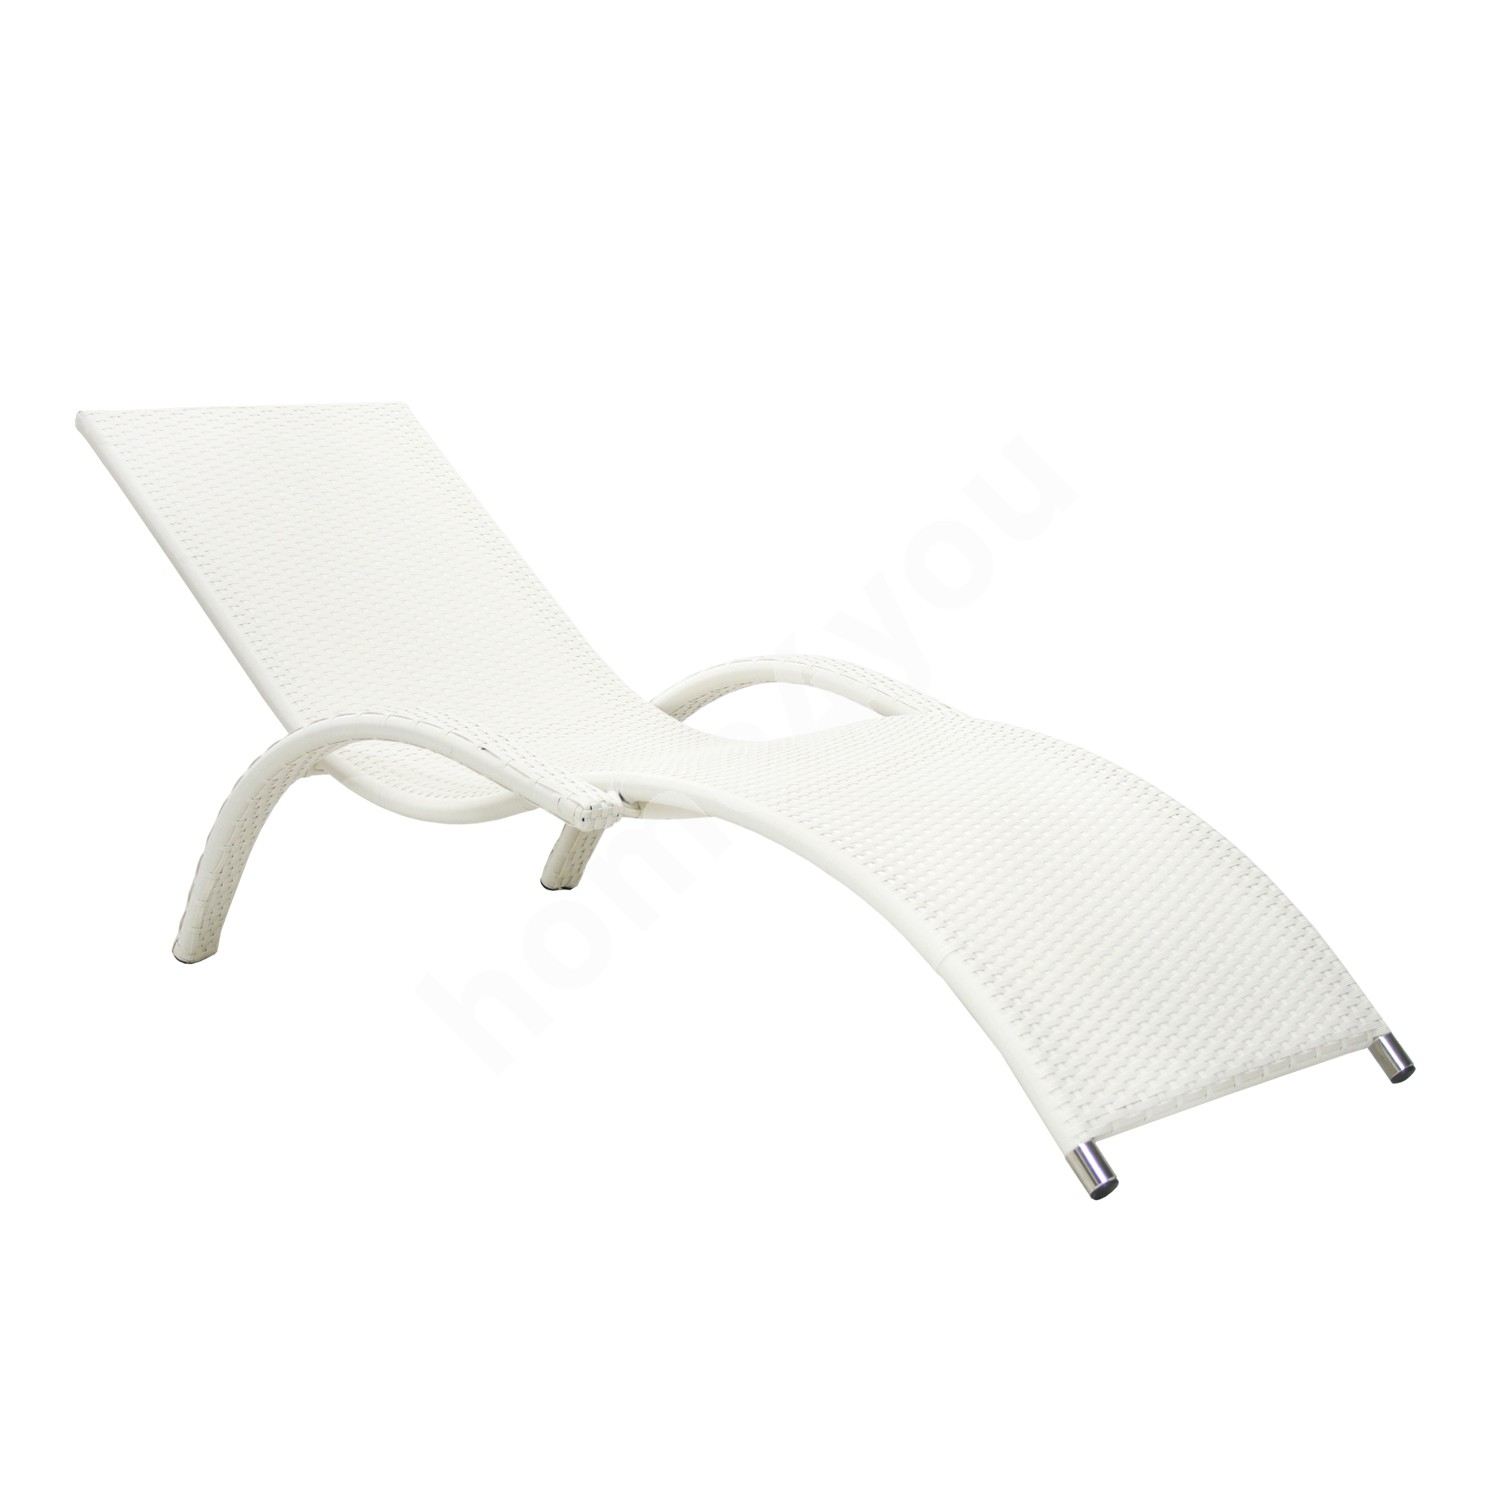 Deck chair MERIDIAN, 180x75x73cm, aluminum frame with plastic wicker, color: white